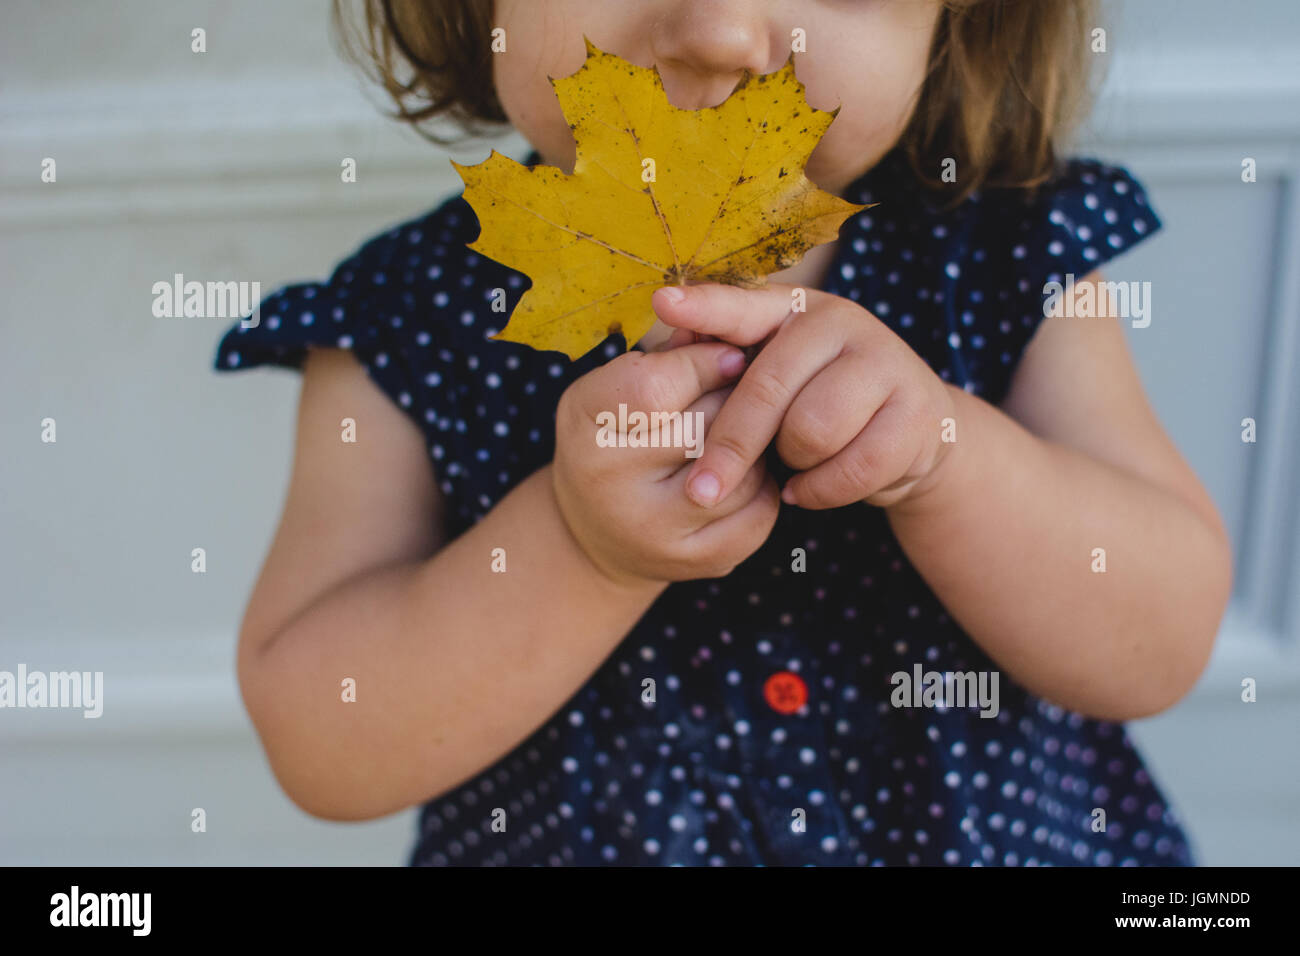 A young child hold a yellow leaf in autumn. - Stock Image